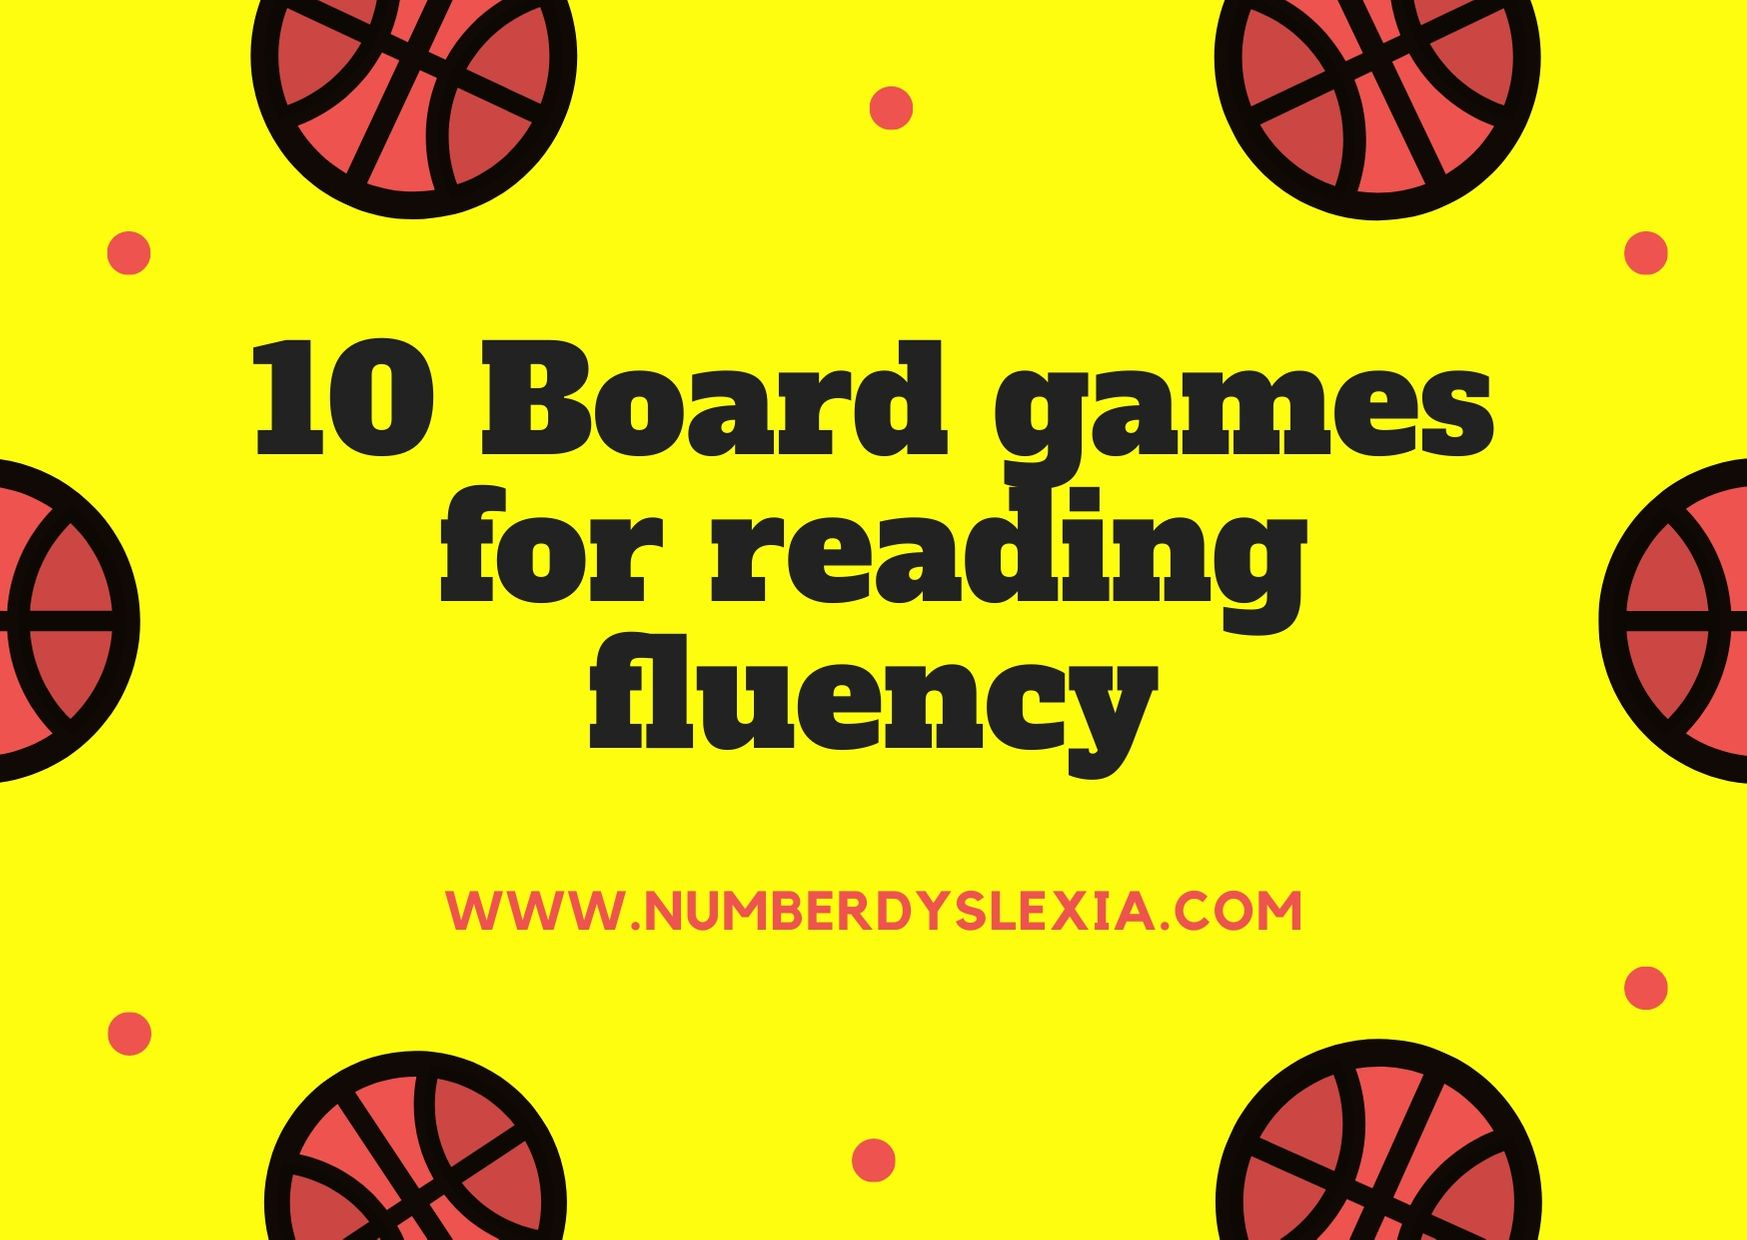 List of top 10 board games for reading fluency